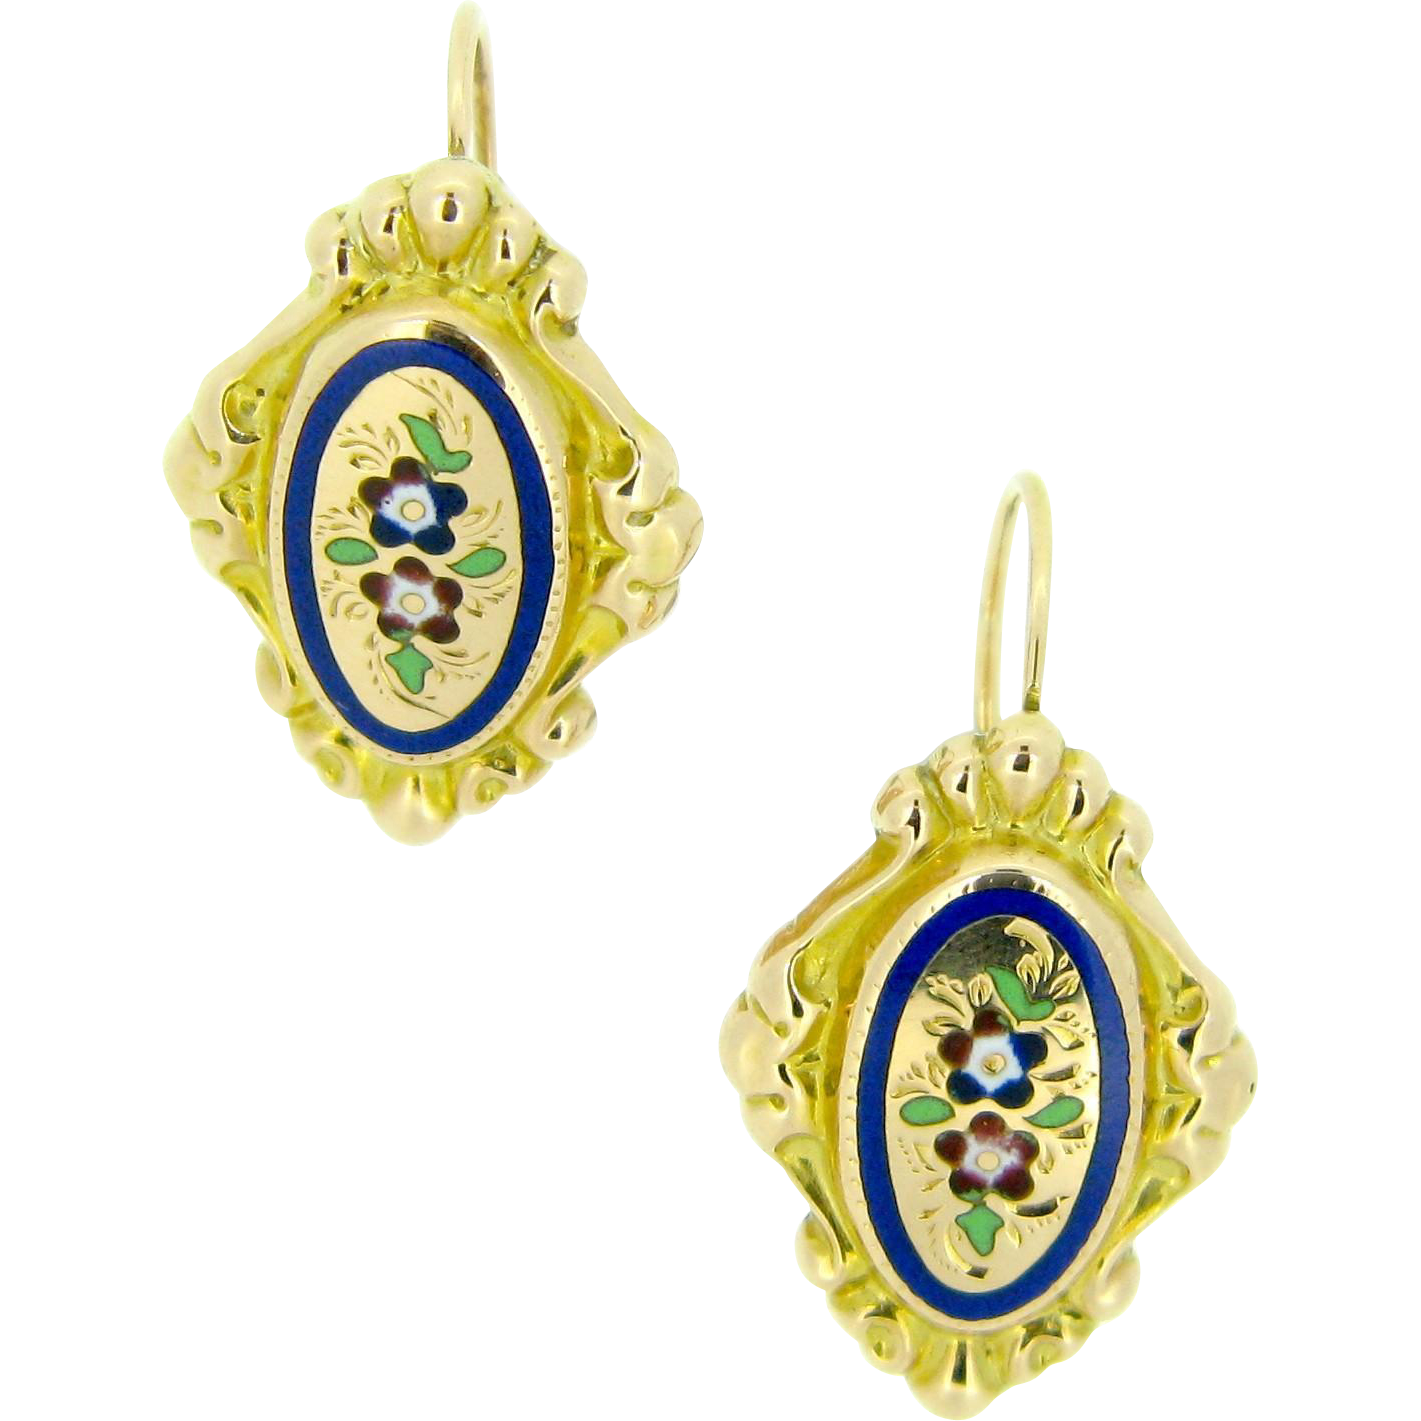 Ravishing French enamelled dormeuses earrings, 18kt gold, c.1880, Lyon, FRANCE